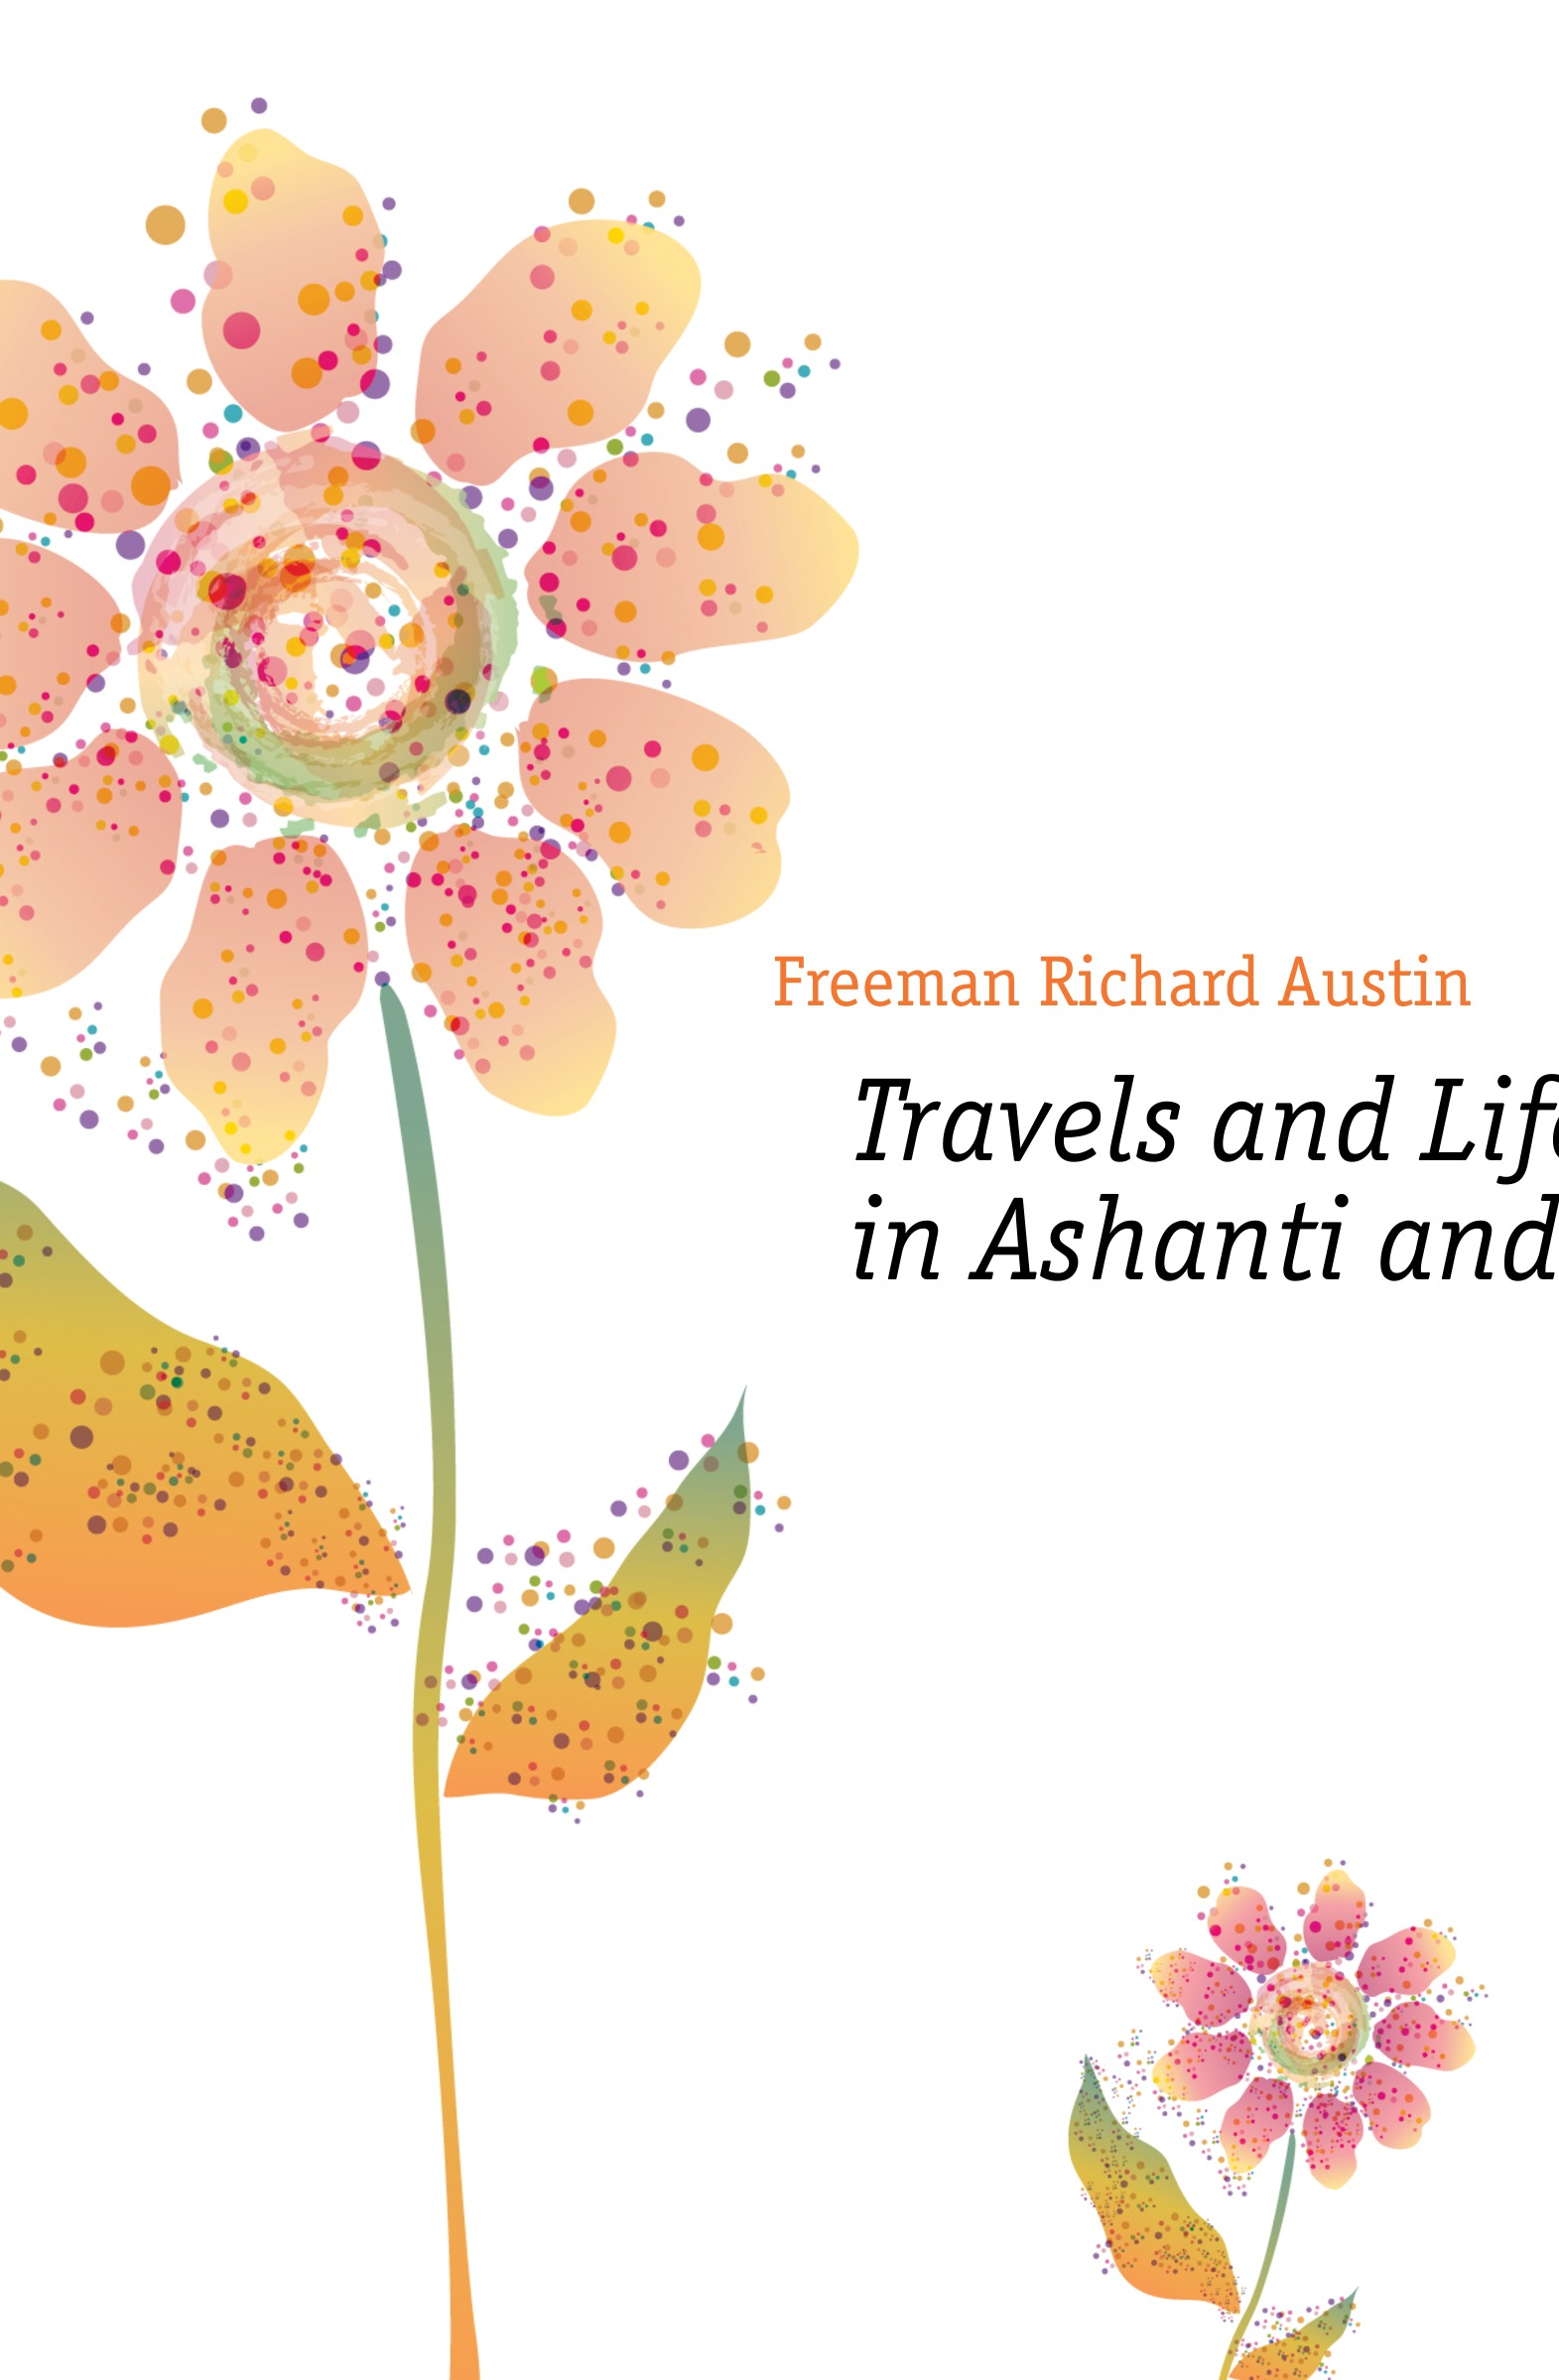 Freeman Richard Austin Travels and Life in Ashanti and Jaman richard austin freeman the vanishing man